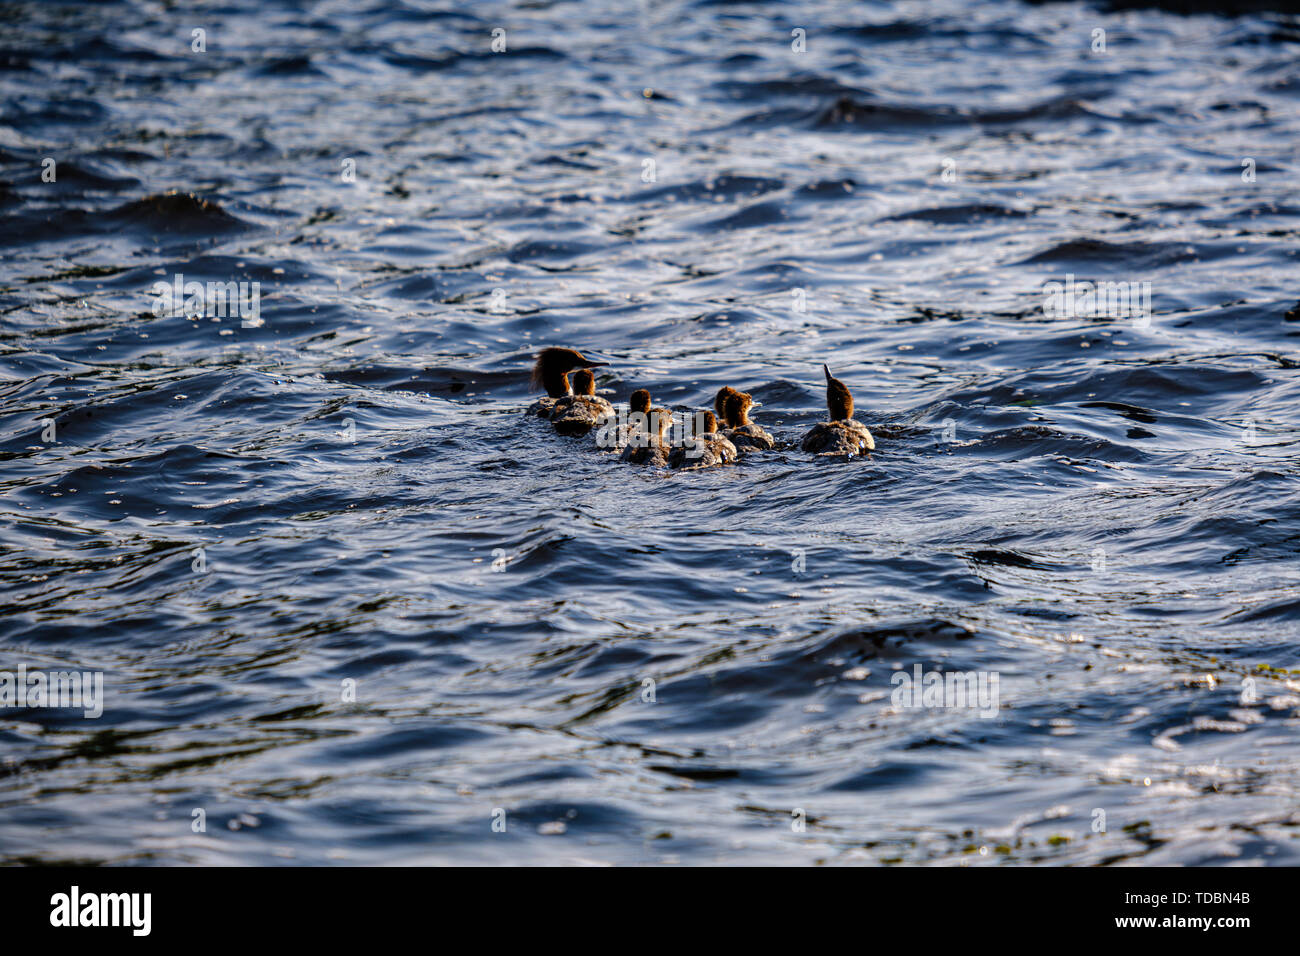 ducks and swans with ducklings swimming in water in summer - Stock Image